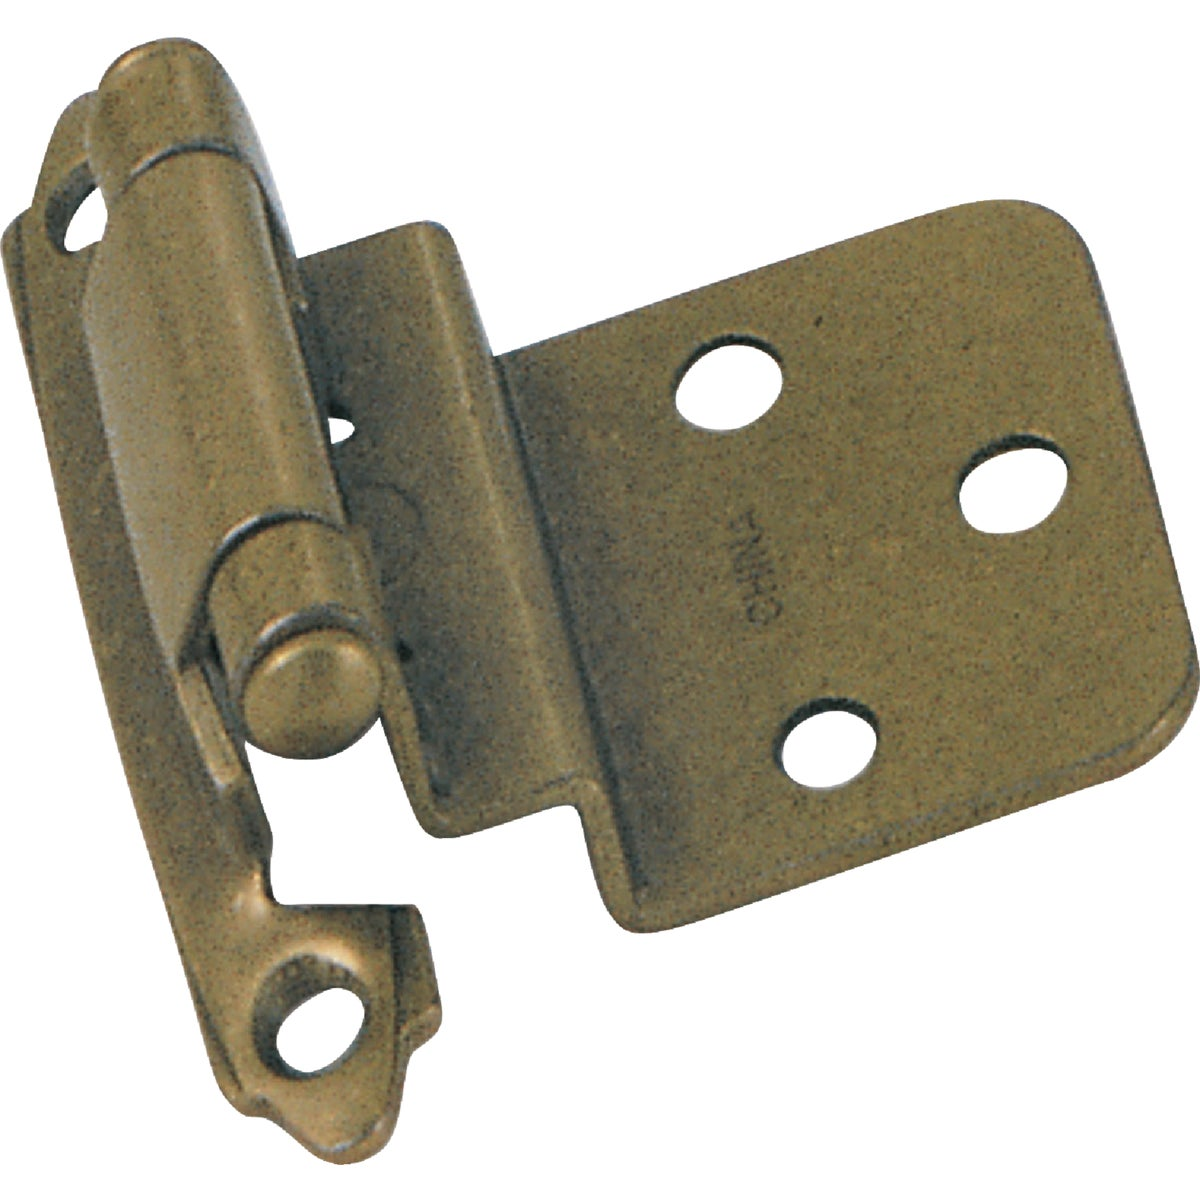 AB HINGE - 28605 by Laurey Co